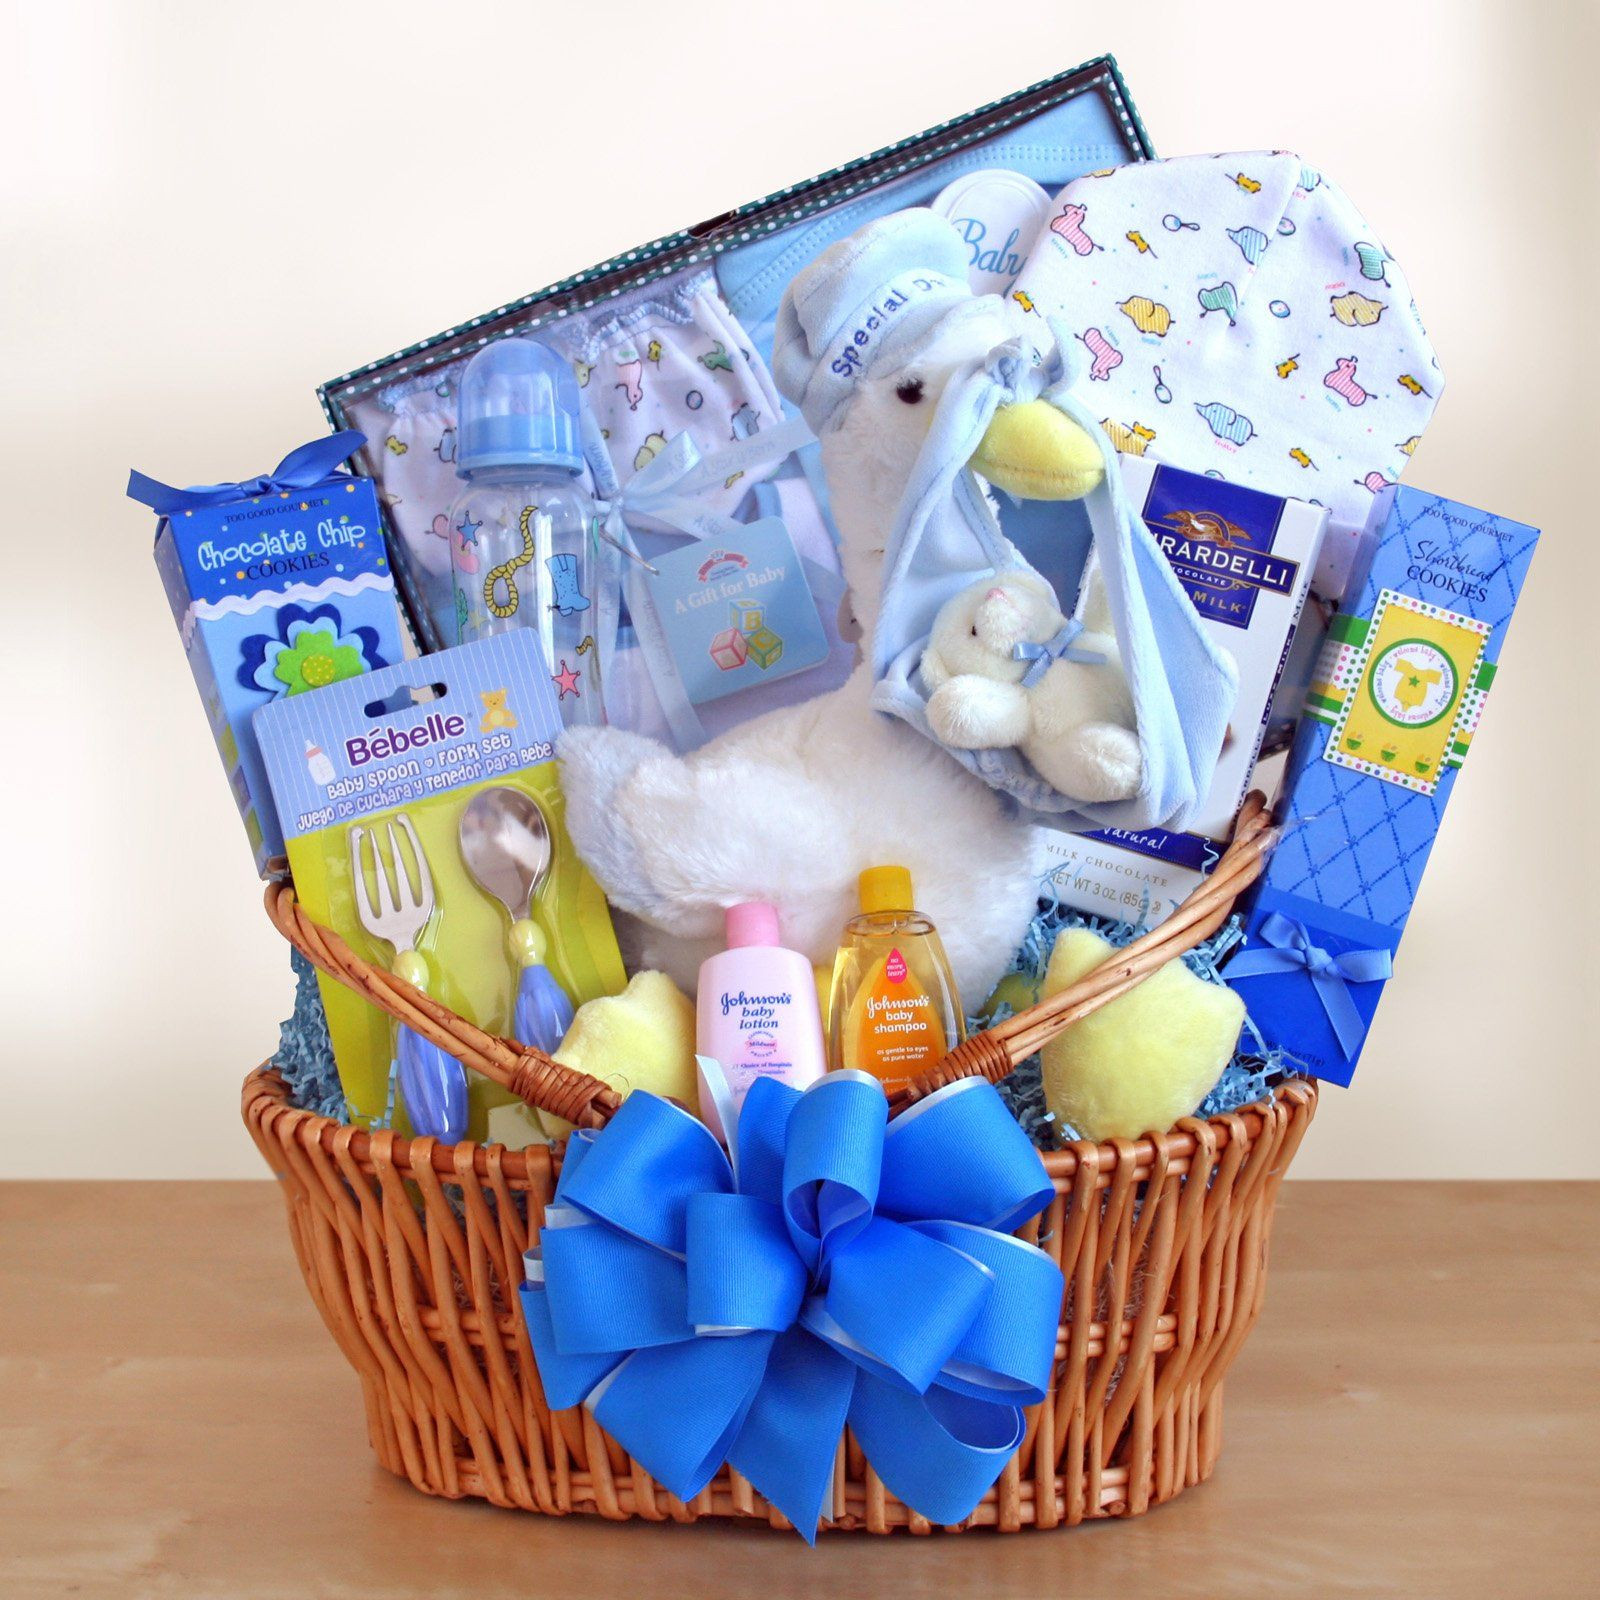 Best ideas about Cute Baby Shower Gift Ideas For A Boy . Save or Pin Special Stork Delivery Baby Boy Gift Basket Now.